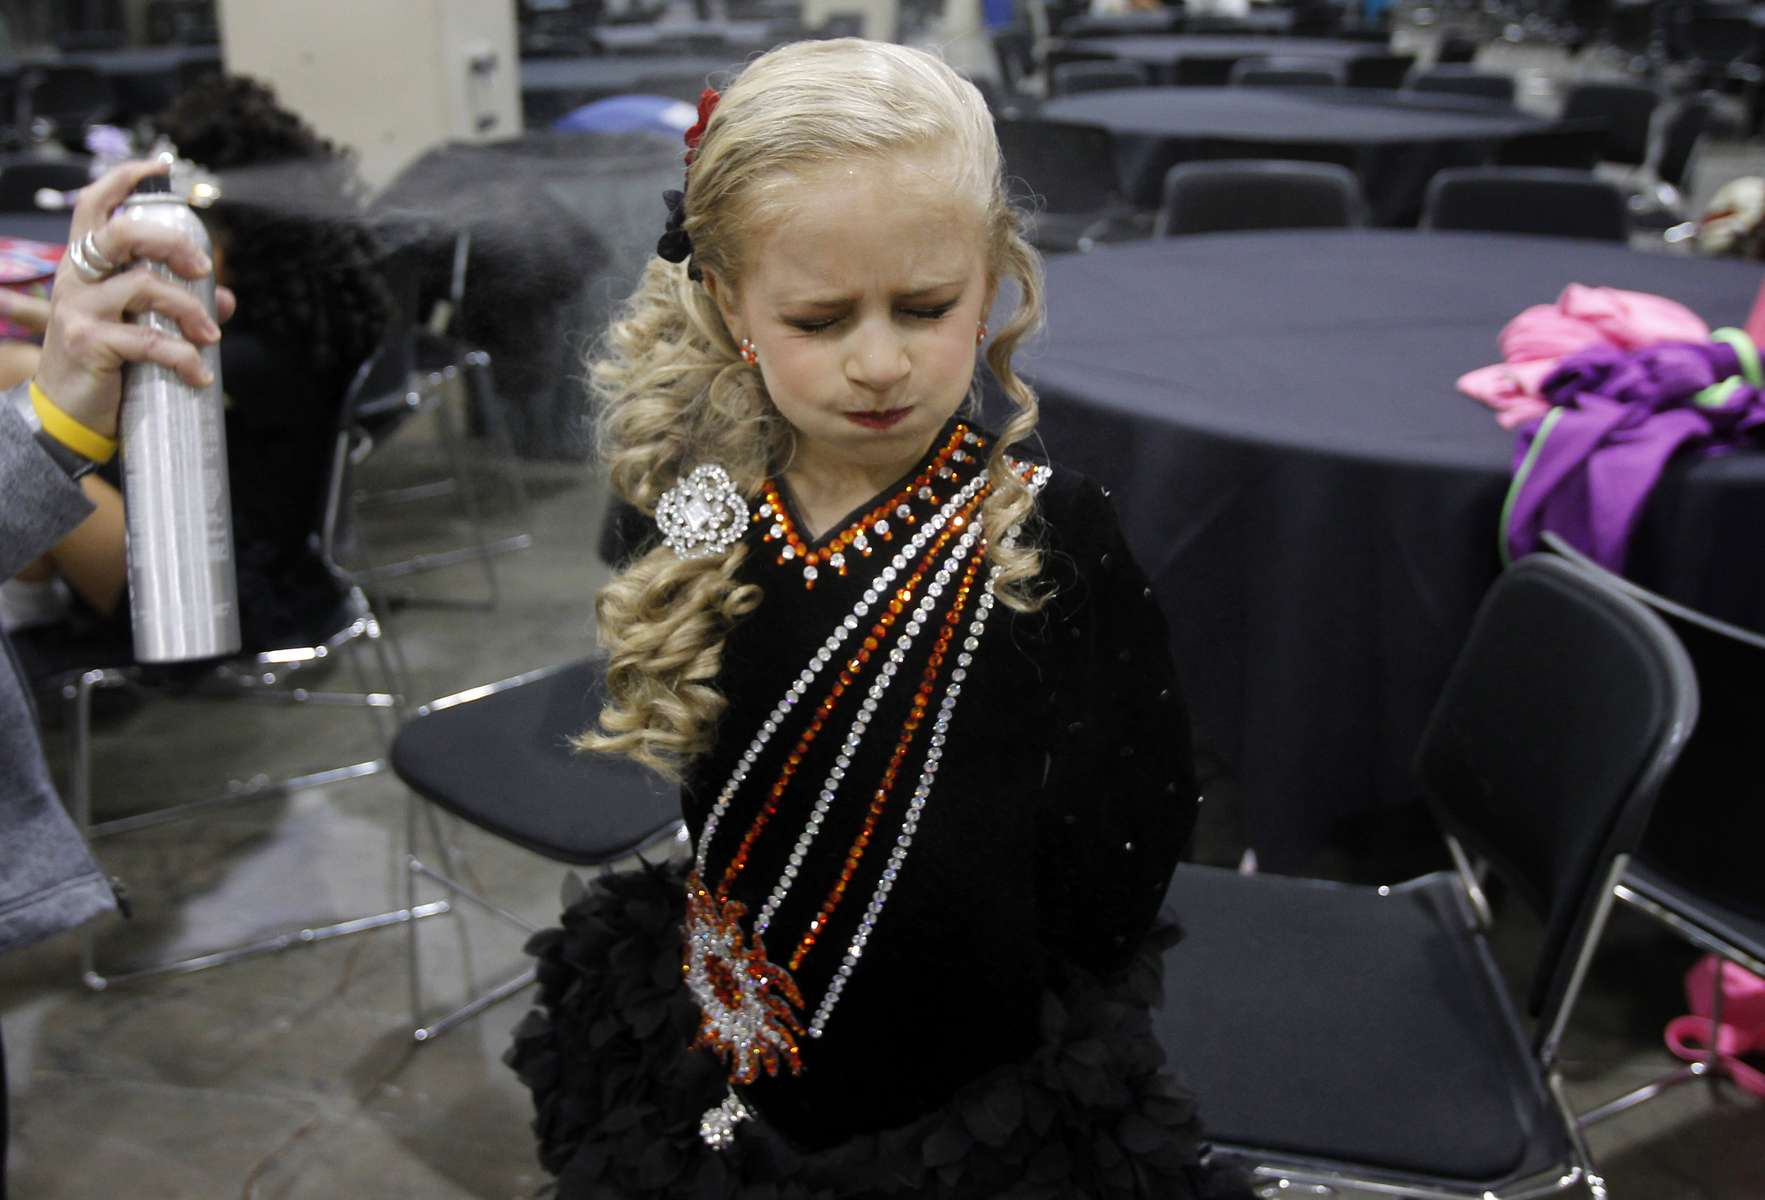 Simone Loysen, 10, holds her breath as her hair is sprayed backstage at the World Irish Dancing Championships in Boston, Massachusetts March 24, 2013.